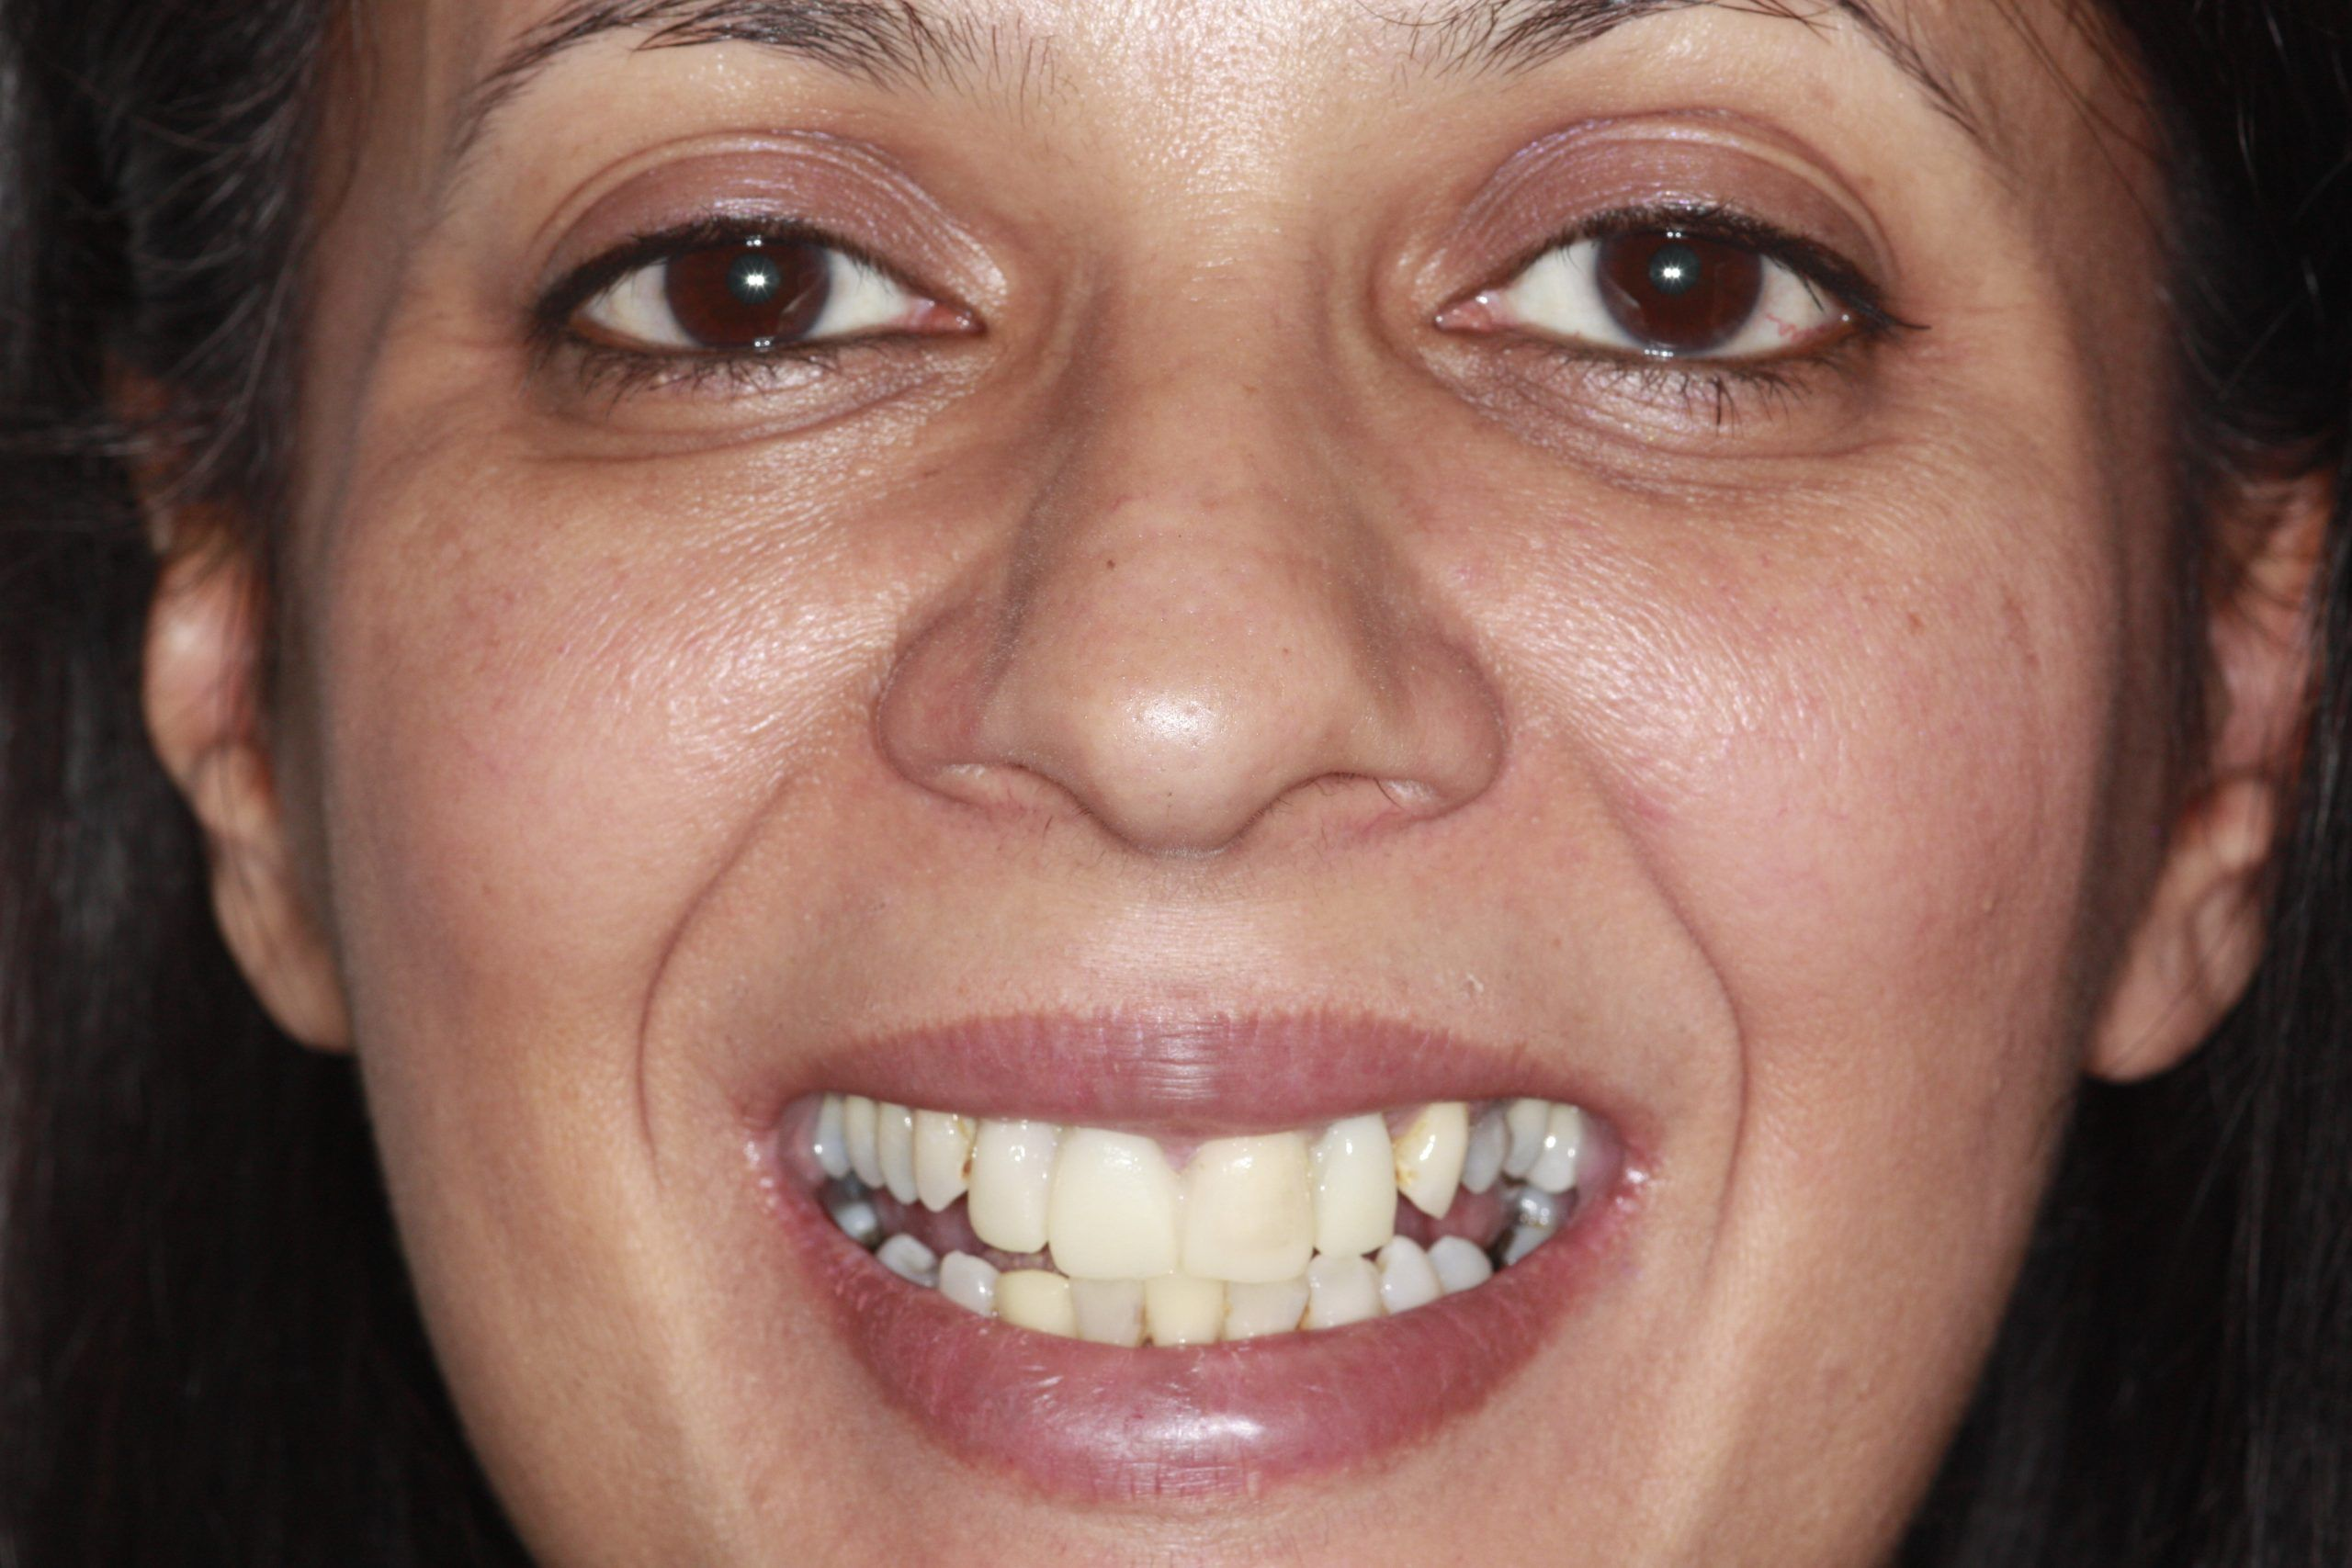 New Smile With Dental Implants Before & After Videos & photos